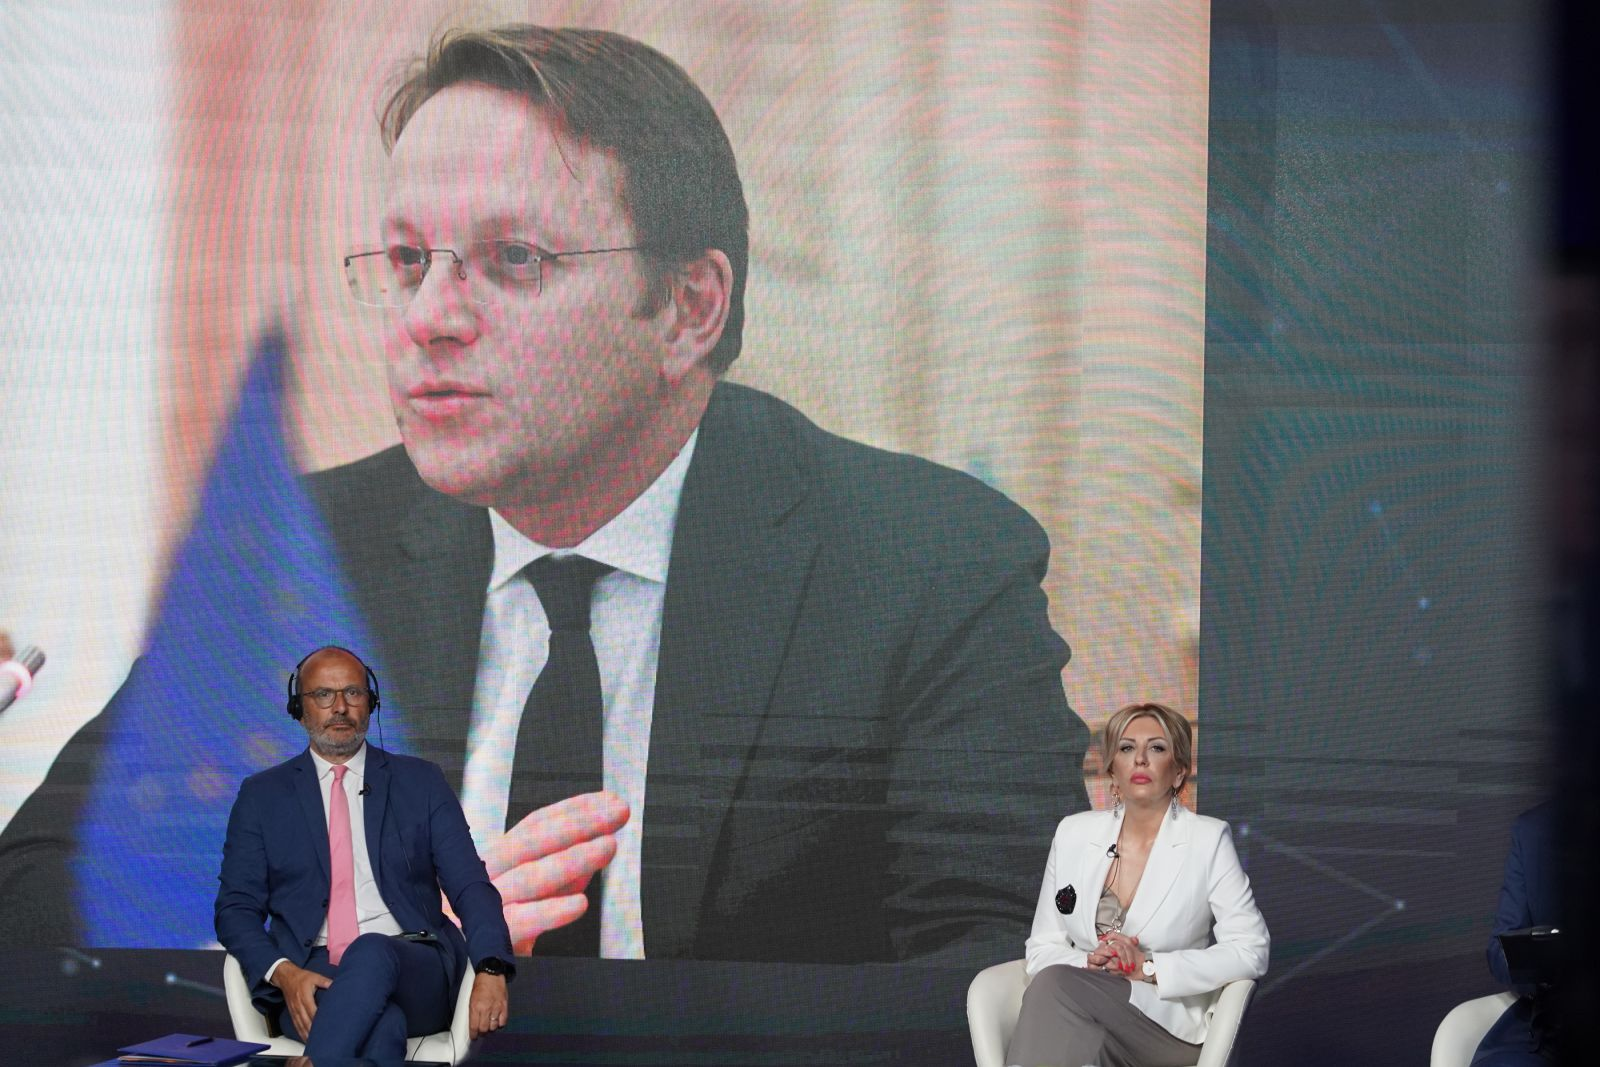 Várhelyi: Serbia will open two clusters this year